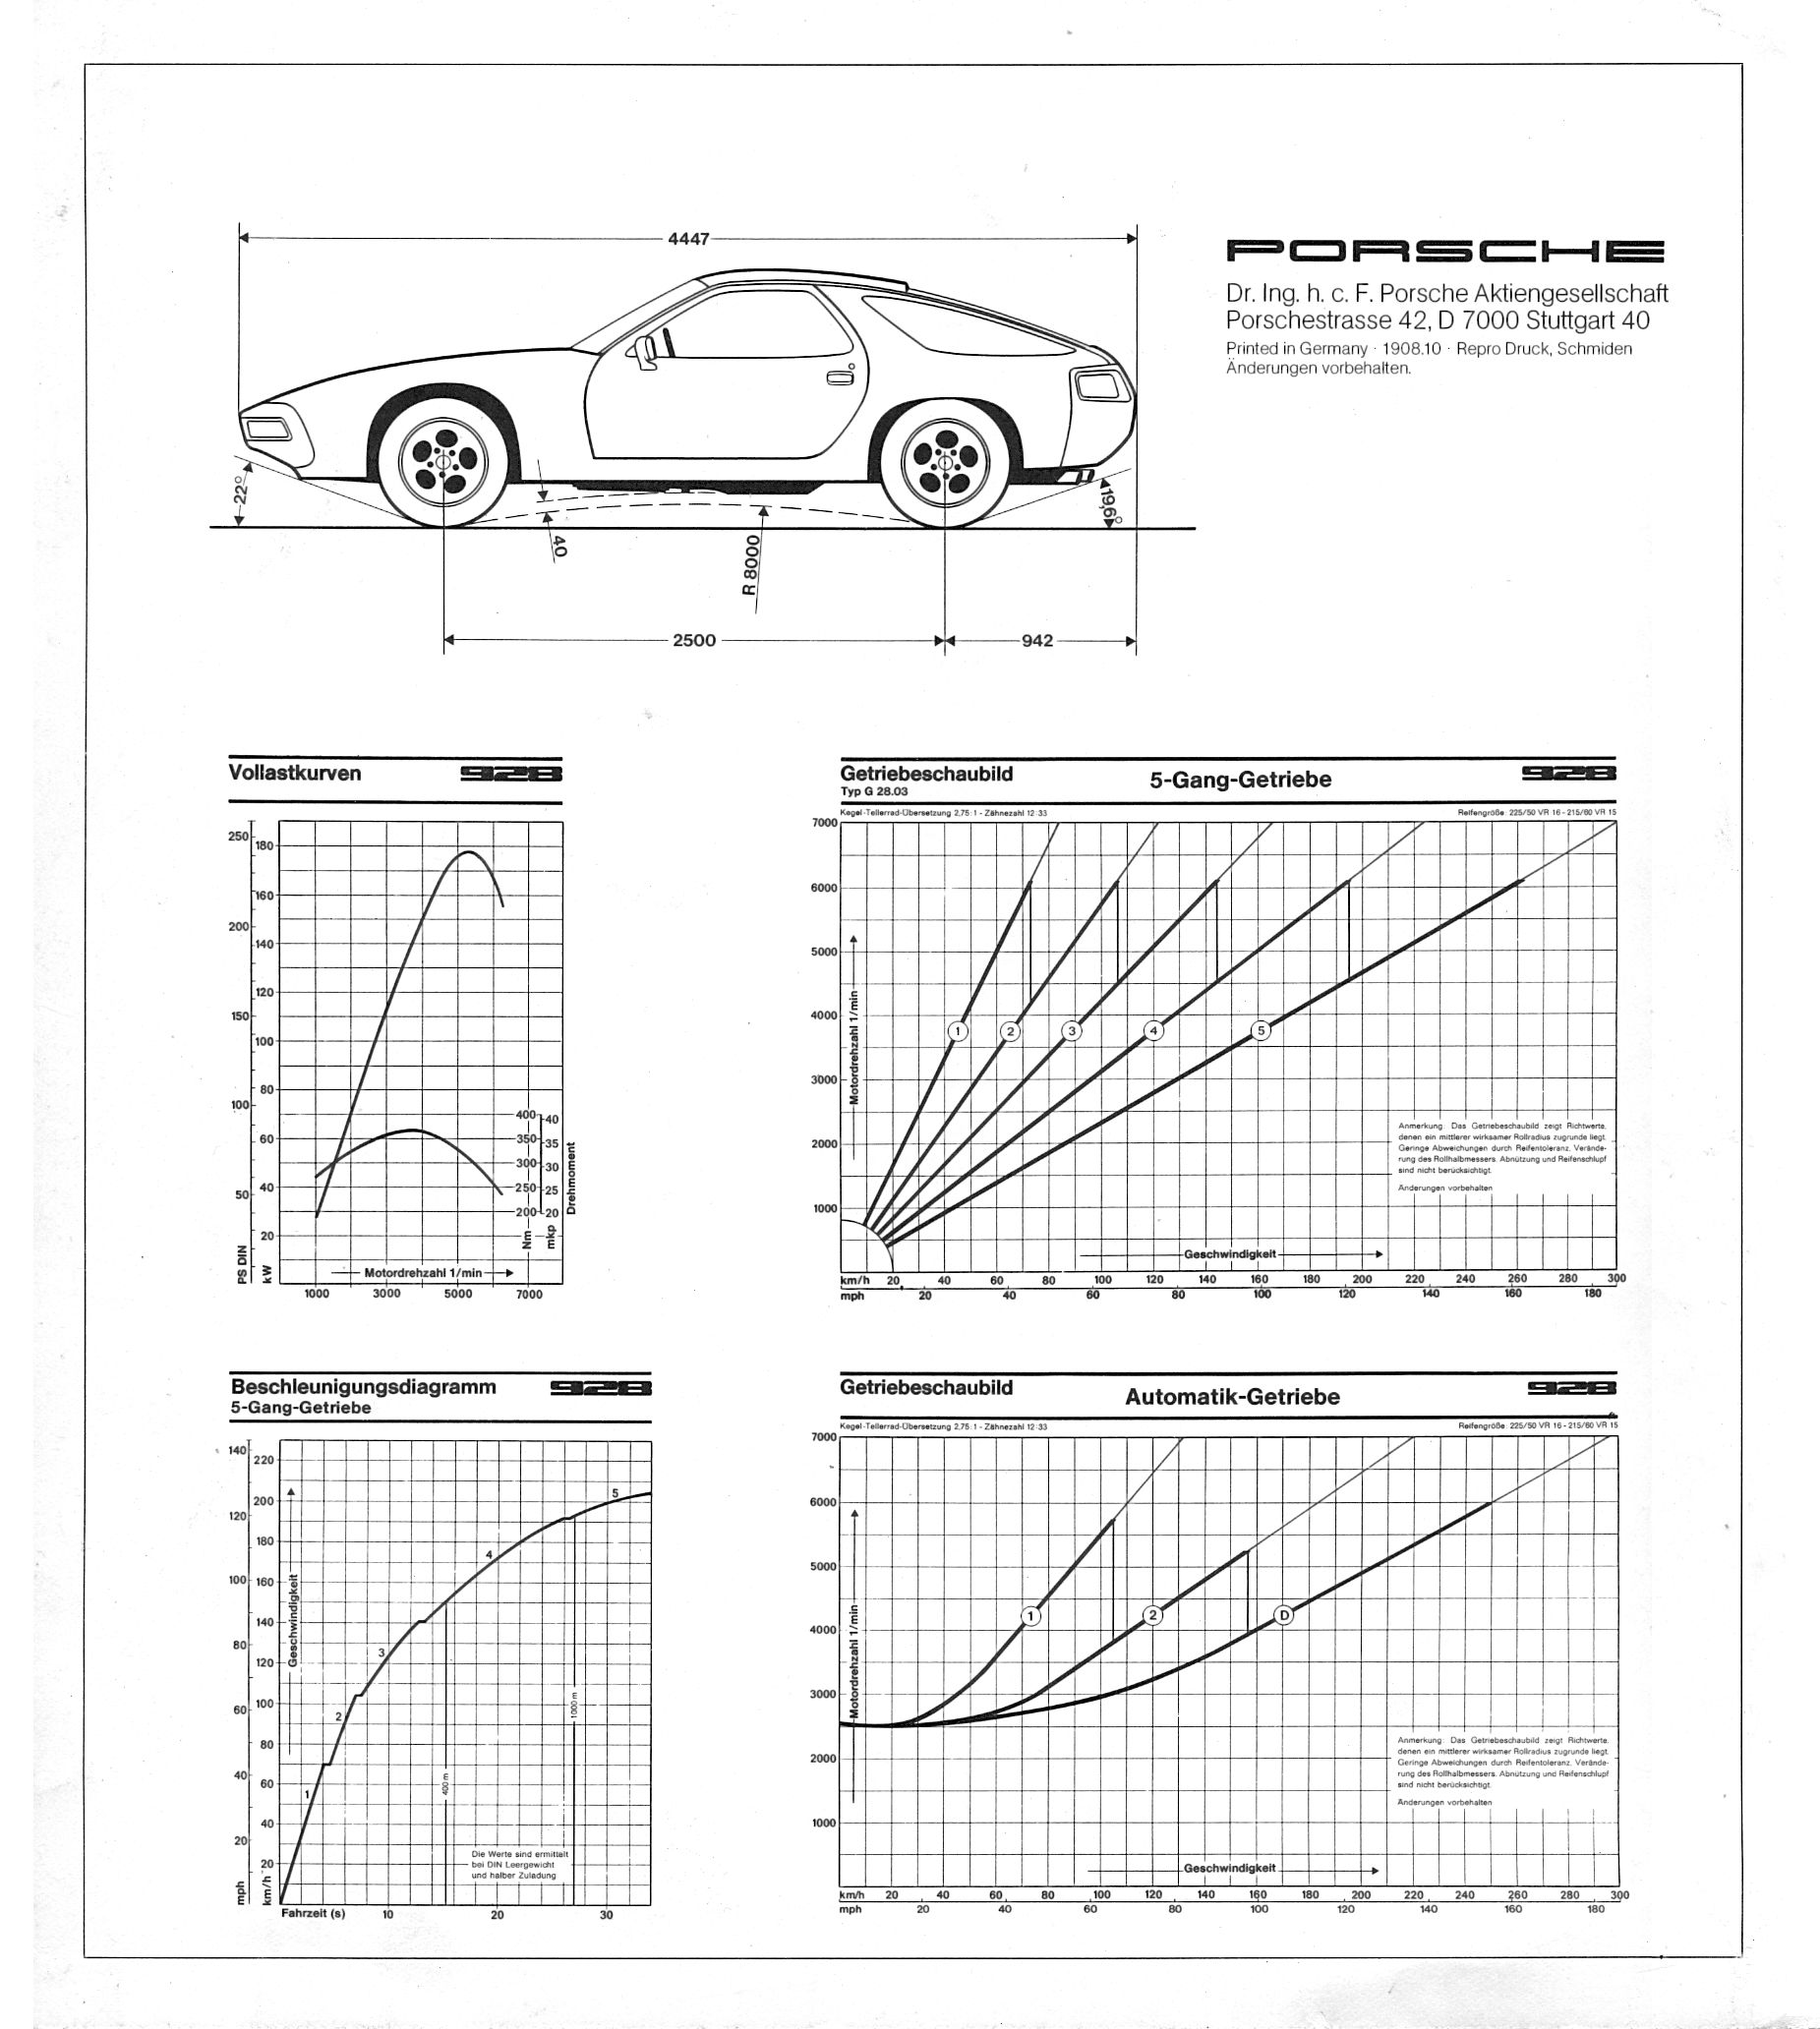 Mbe 900 Fuel System Diagram together with Dme 03 also Hardparts besides Bosch K Jetronic Wiring Diagram additionally Diverter Valve Diagram. on porsche 928 manual